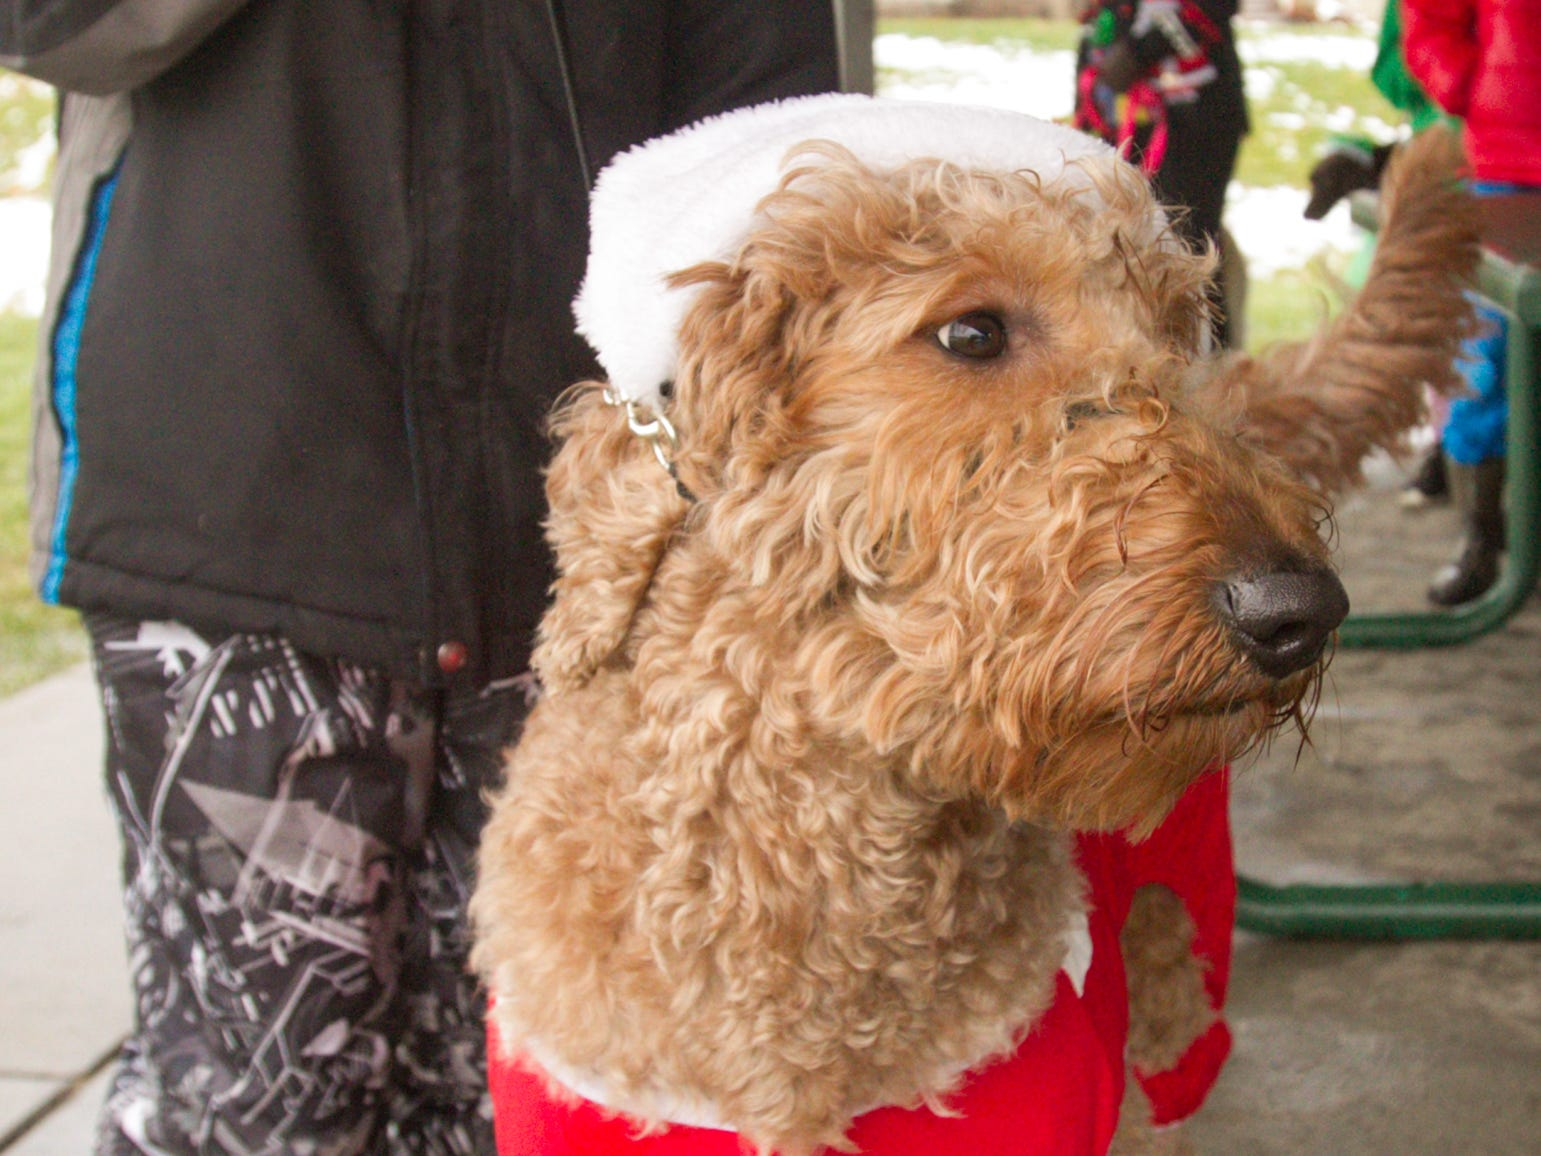 Poppy took second place in the pet parade at the Christmas in the 'Ville Saturday, Dec. 1, 2018.